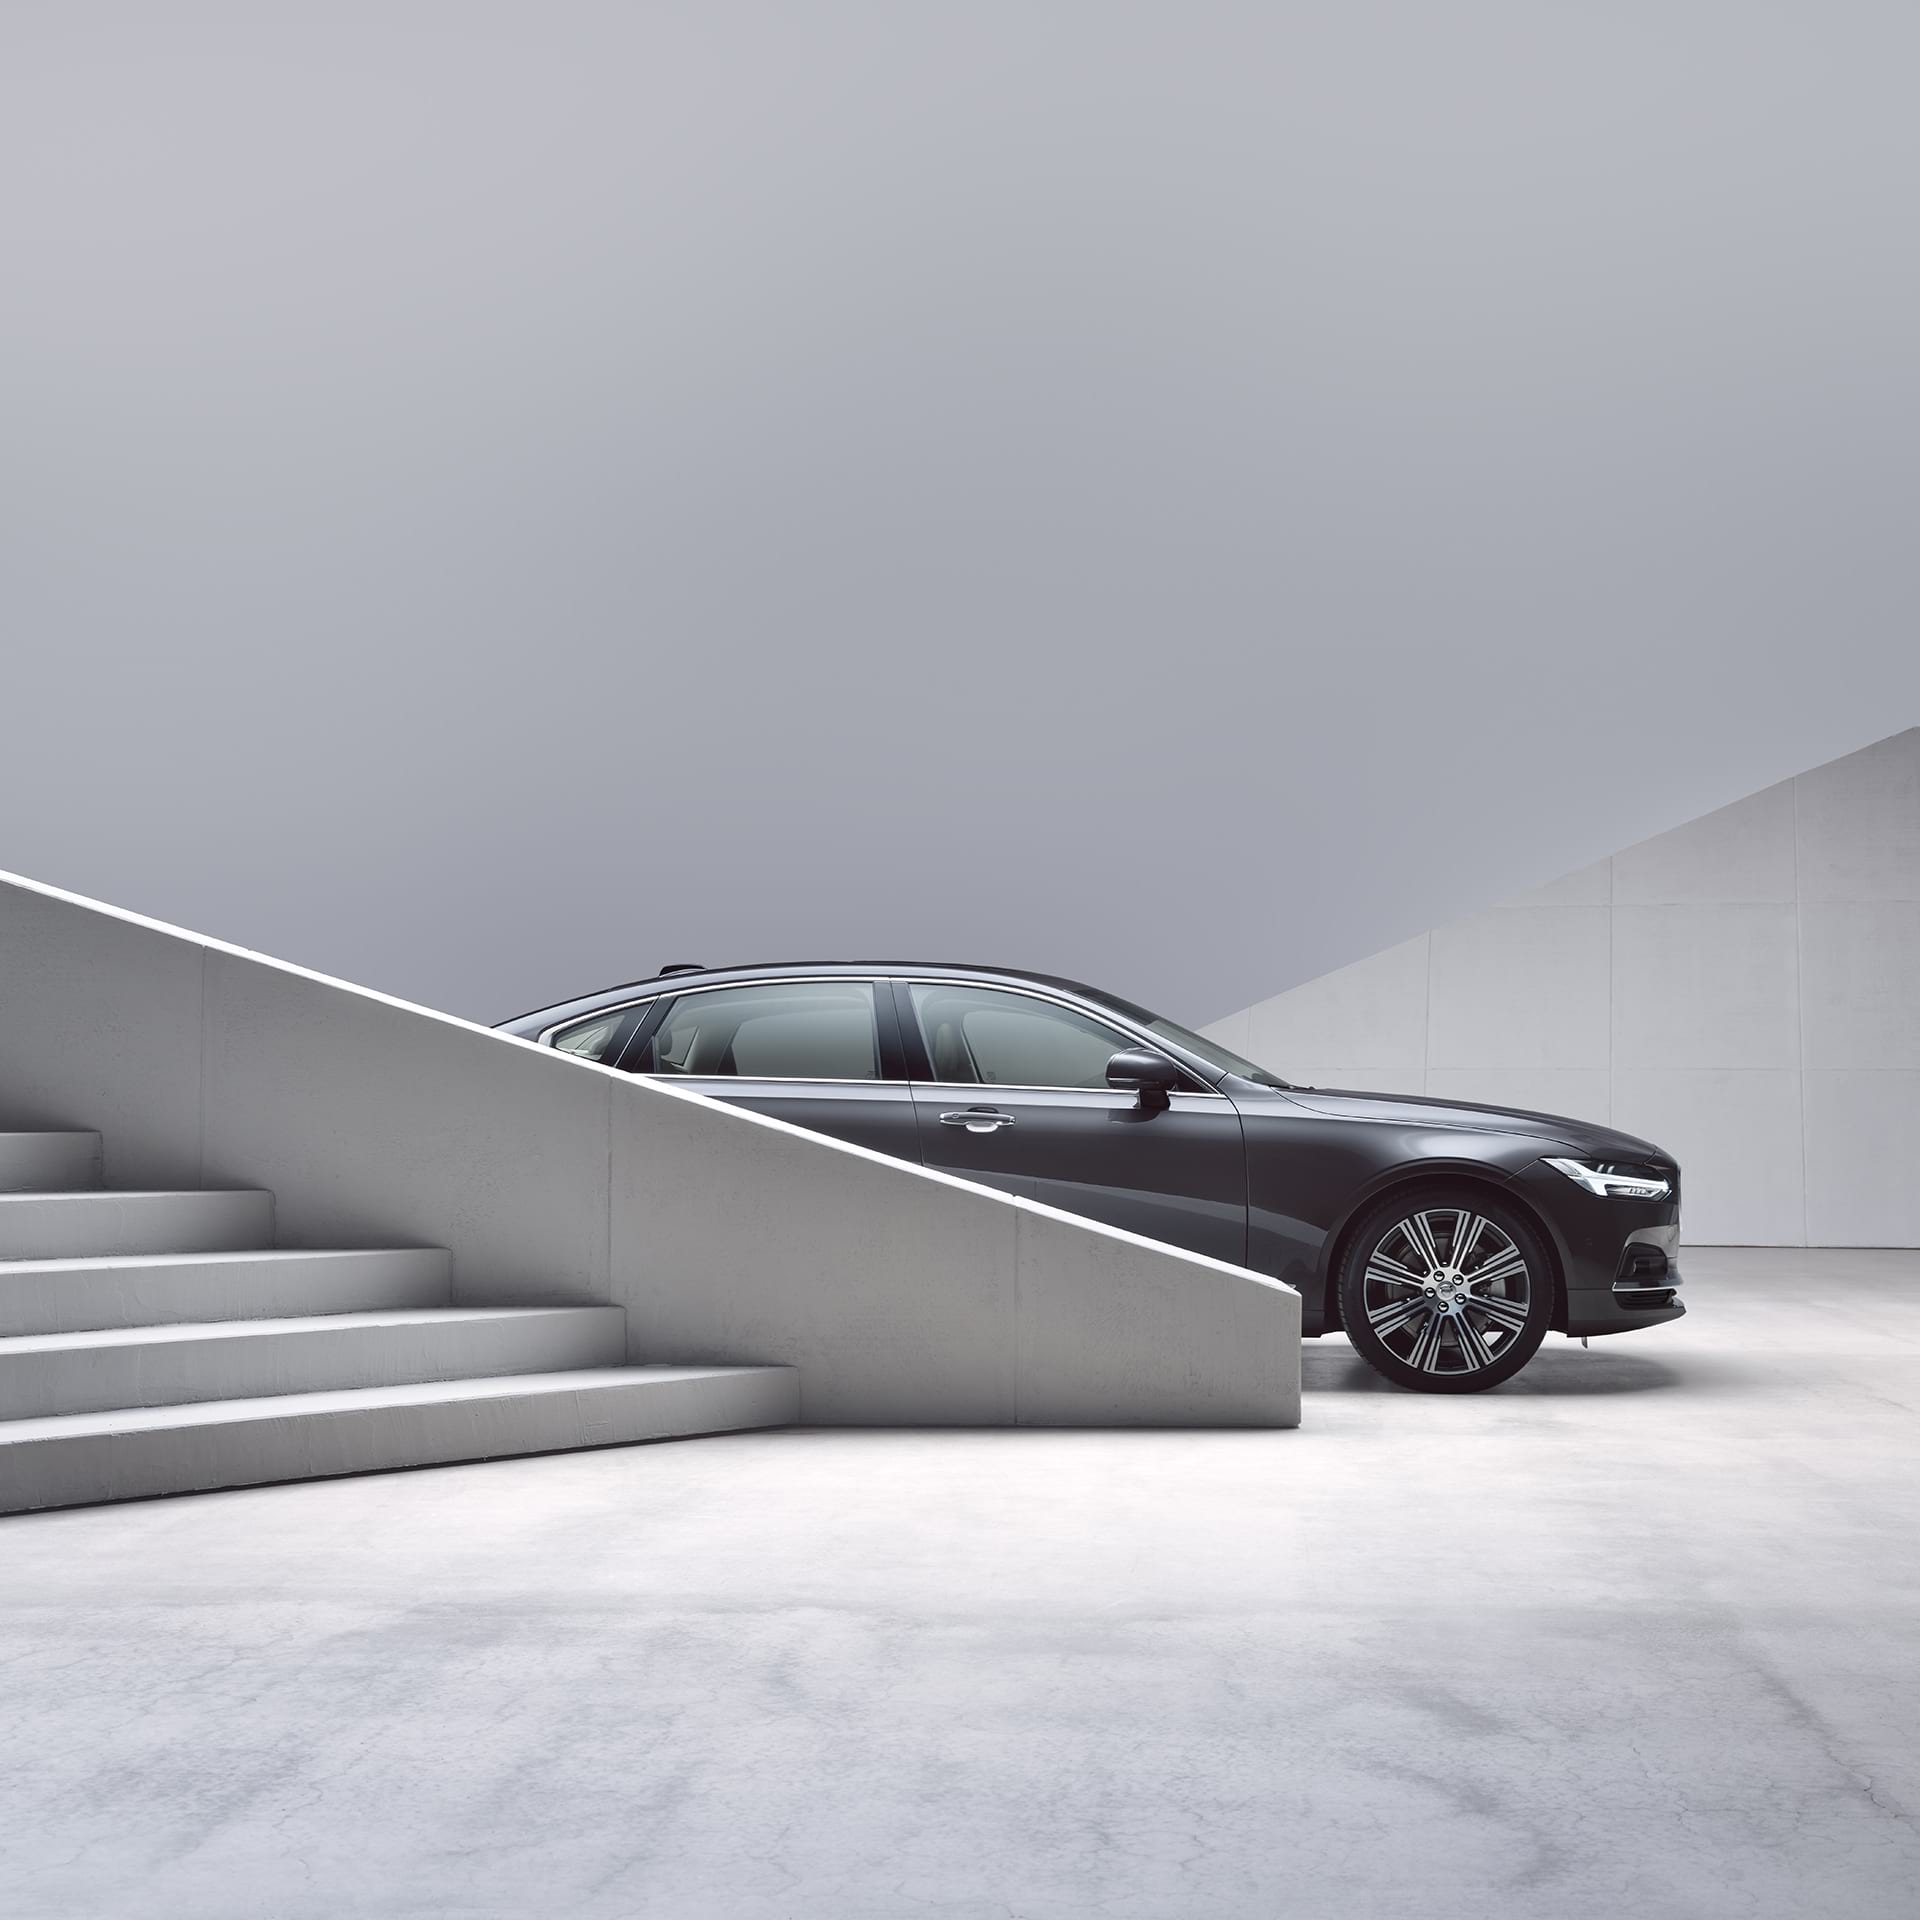 A Volvo S90 partially obscured by stairs